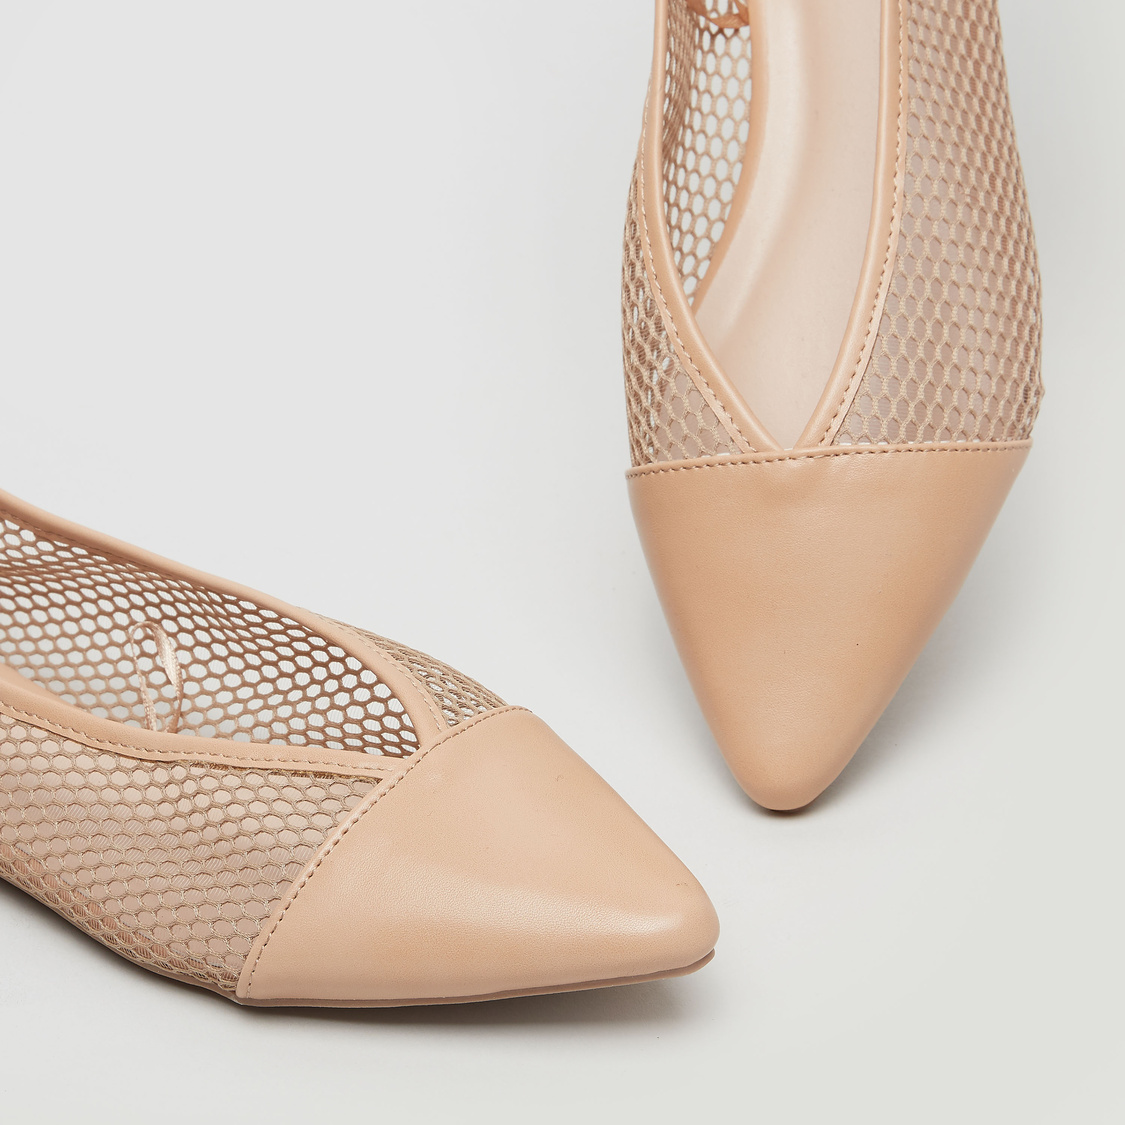 Mesh Textured Ballerina Shoes